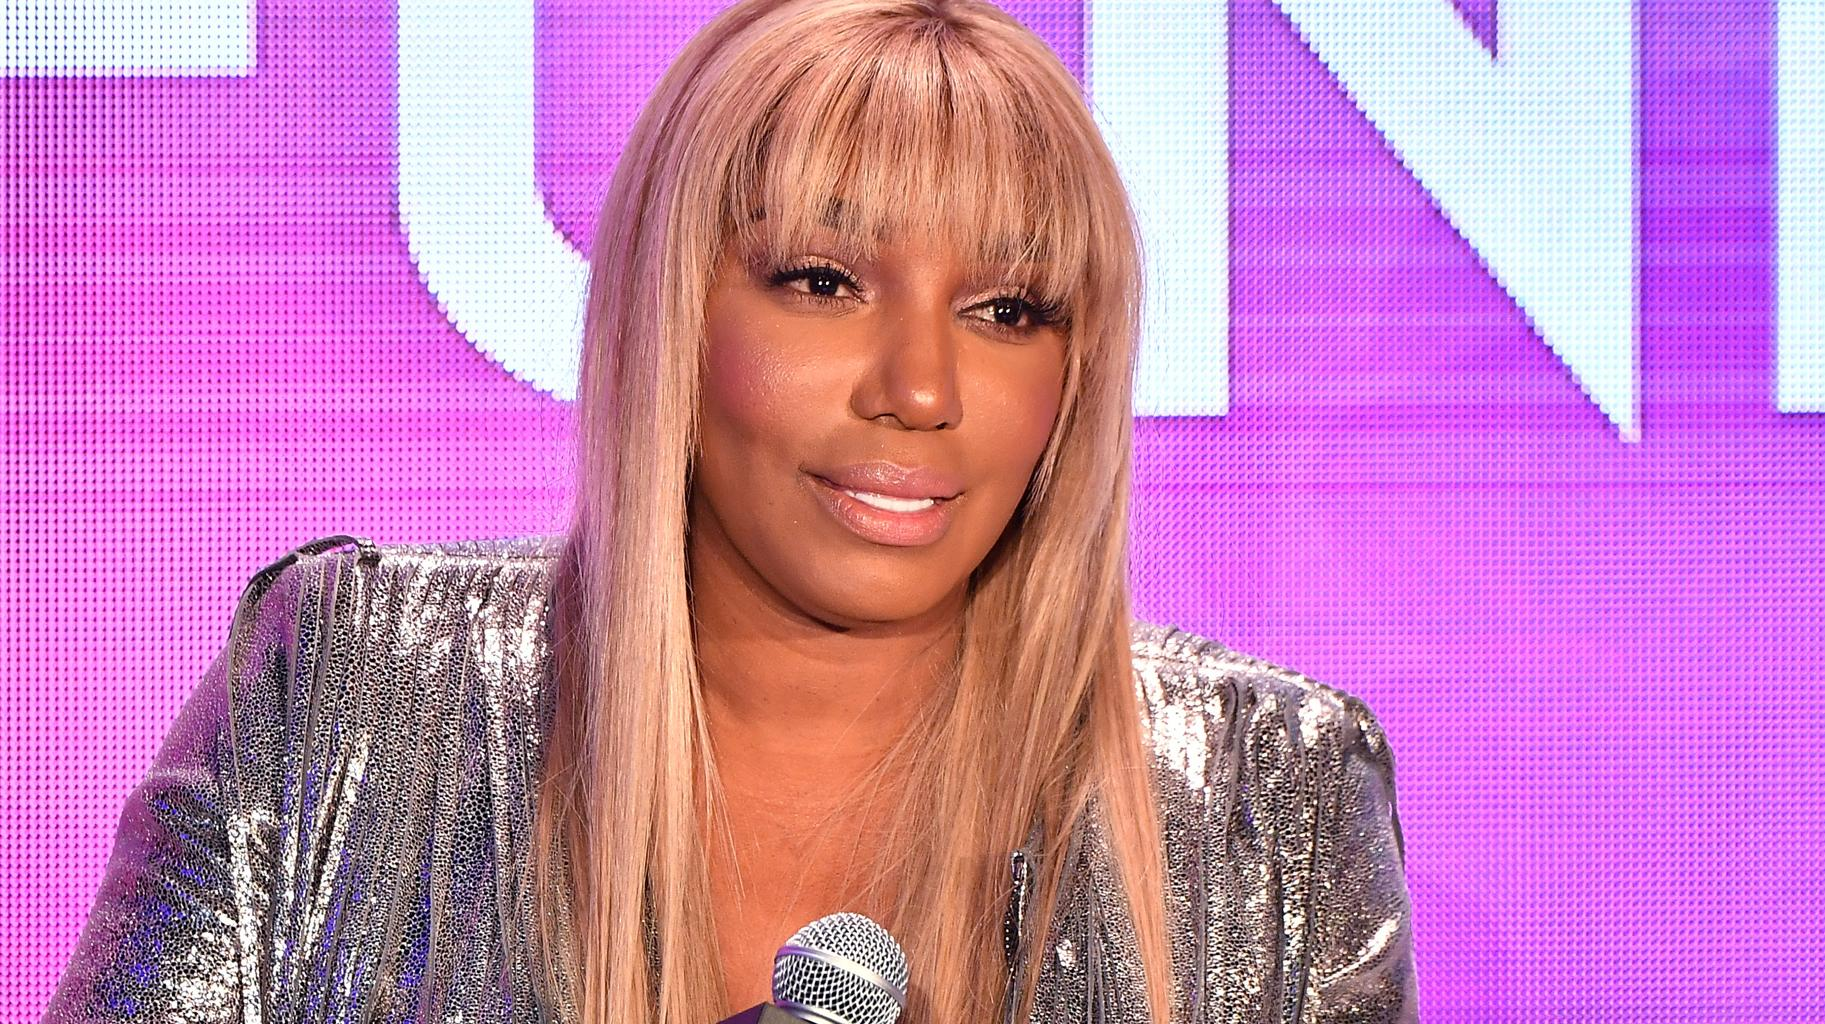 NeNe Leakes Mentions Michelle Obama And More Famous Ladies In Her Rant, Defending The 'Right' Of Public Figures To Wear The Same Dress Multiple Times - See The Photos & Message